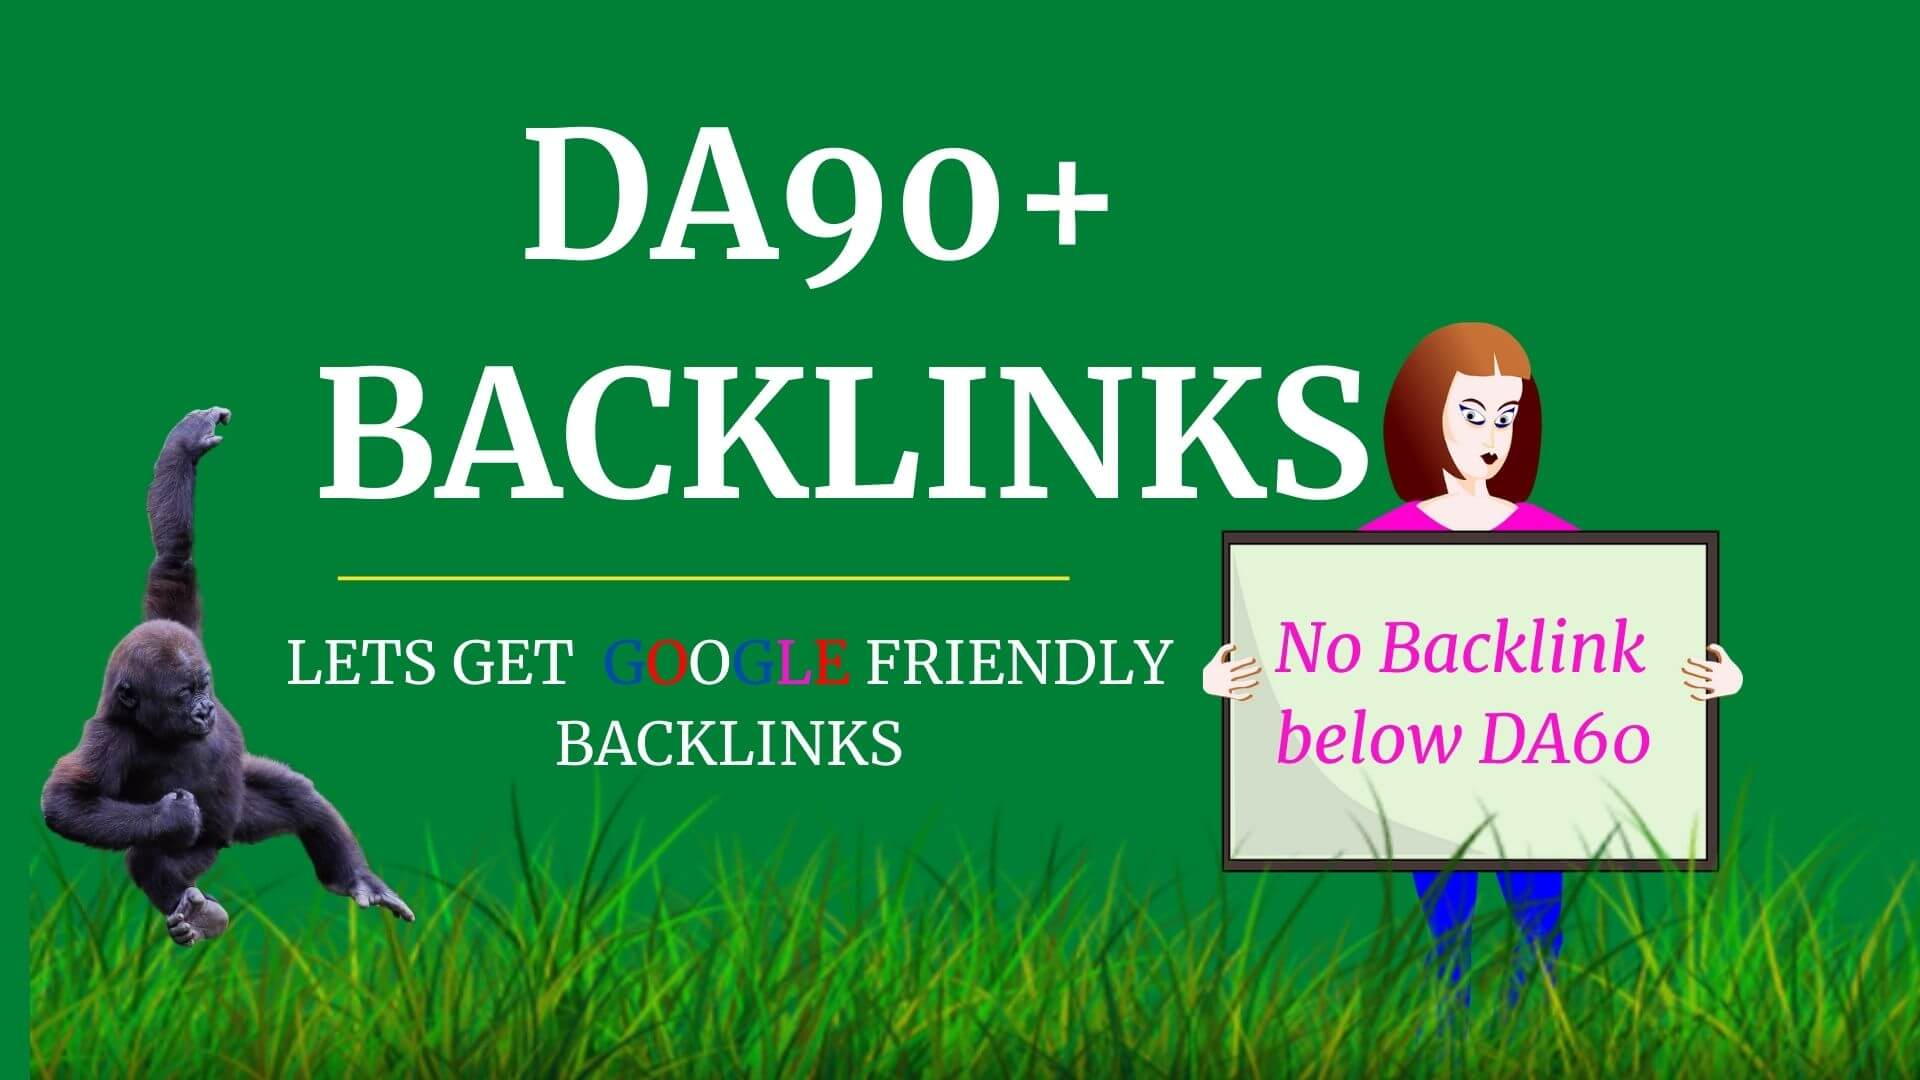 Only DA100 to DA60+ Backlinks from PDF,  Gov,  Wiki,  Edu,  Forum to rank high competition keyword